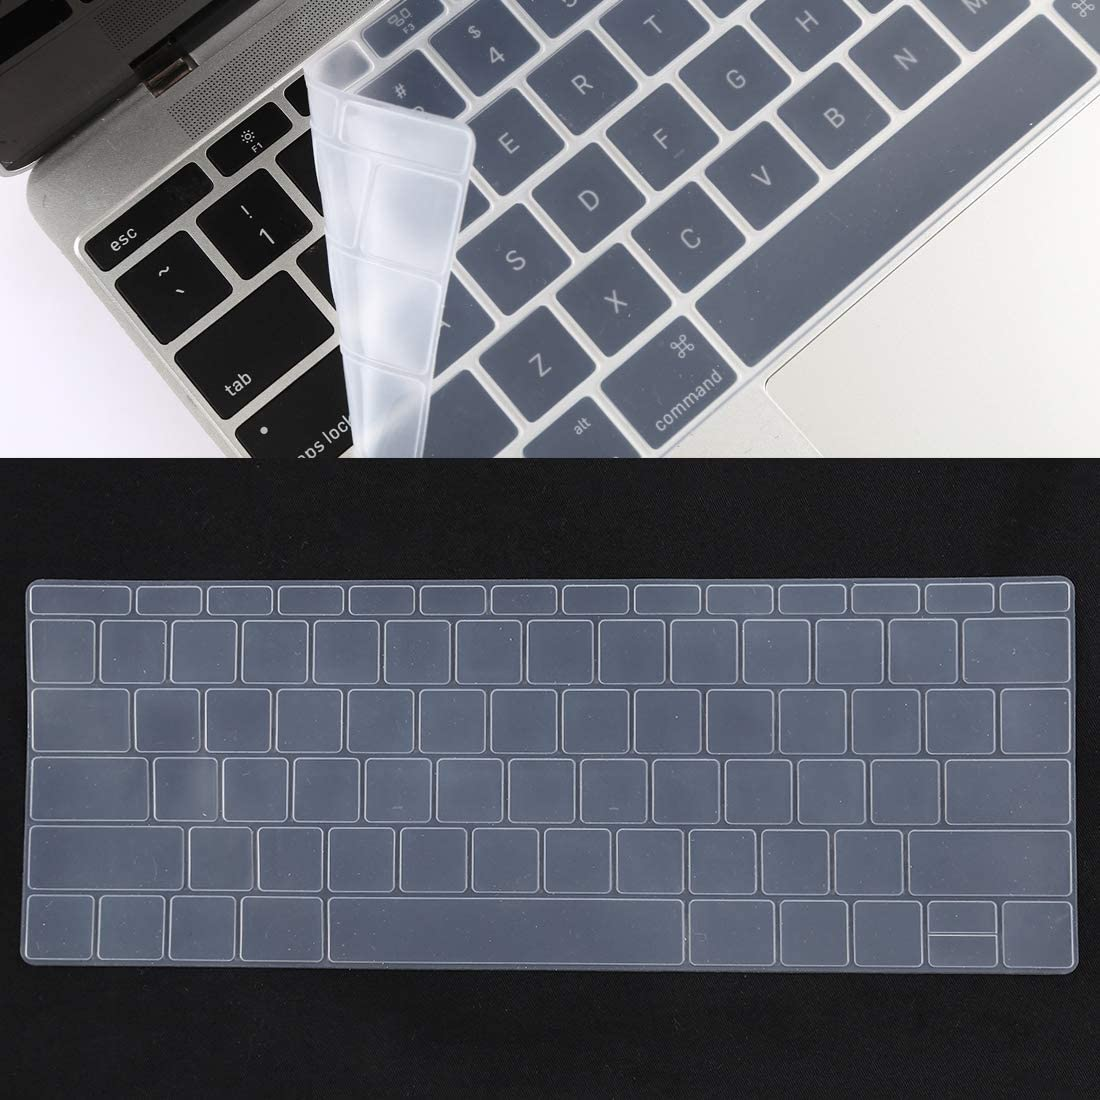 A1534 // A1708 Black Color : Black CellphoneMall Protectors Keyboard Protector Silica Gel Film for MacBook Retina 12 // Pro 13